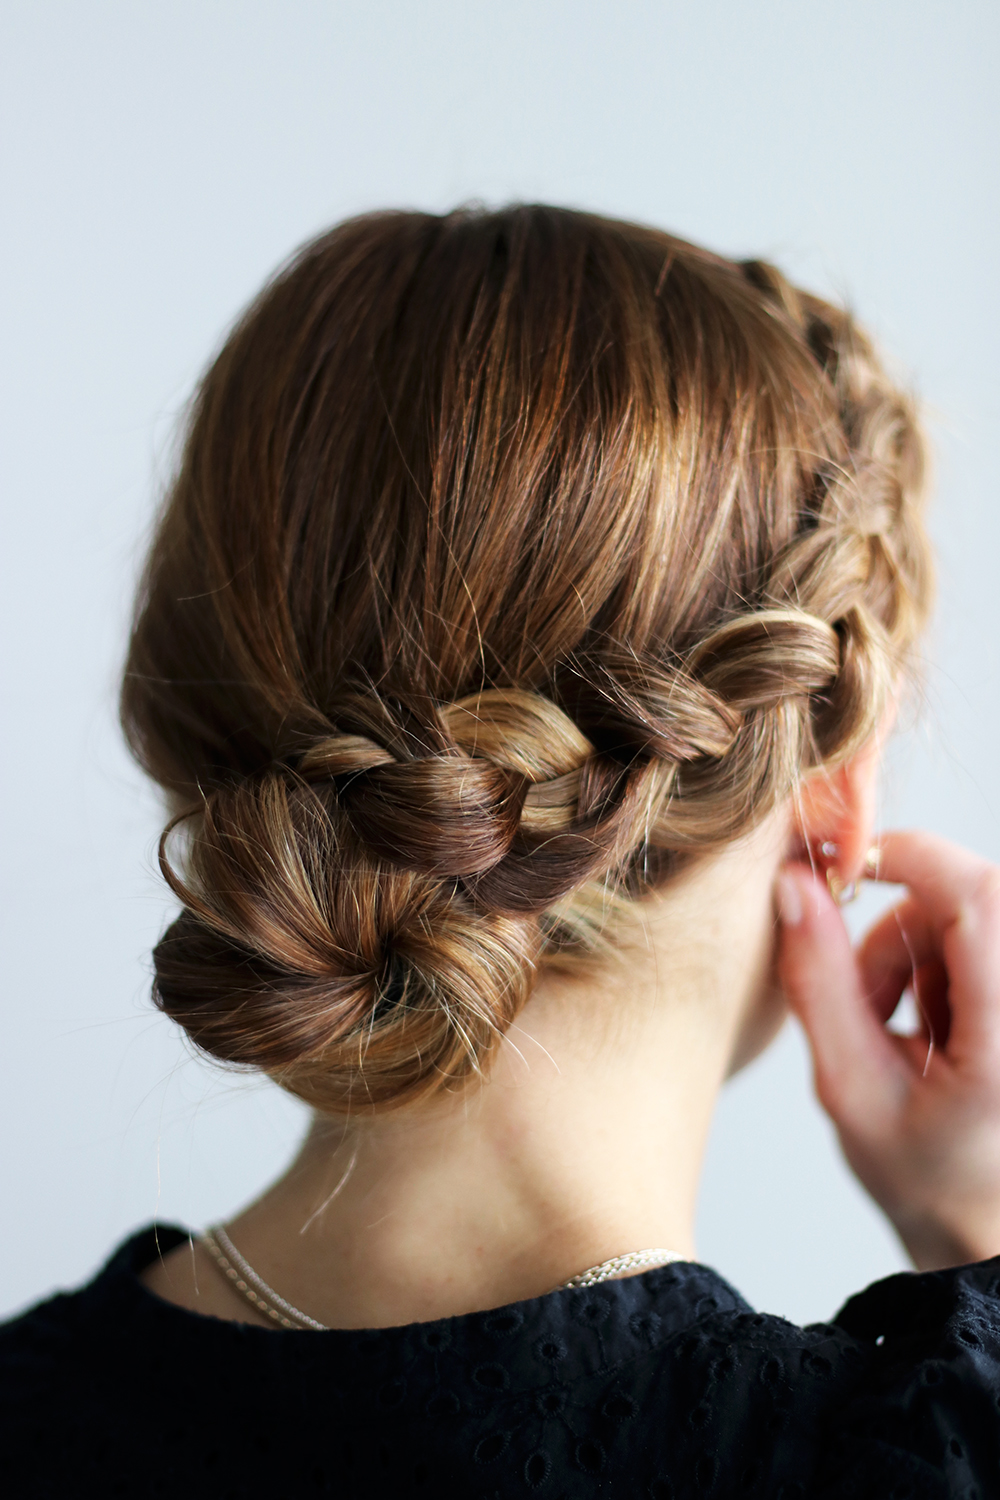 DIY File: 3 Braided Hairstyles Perfect for Summer - gaby burger